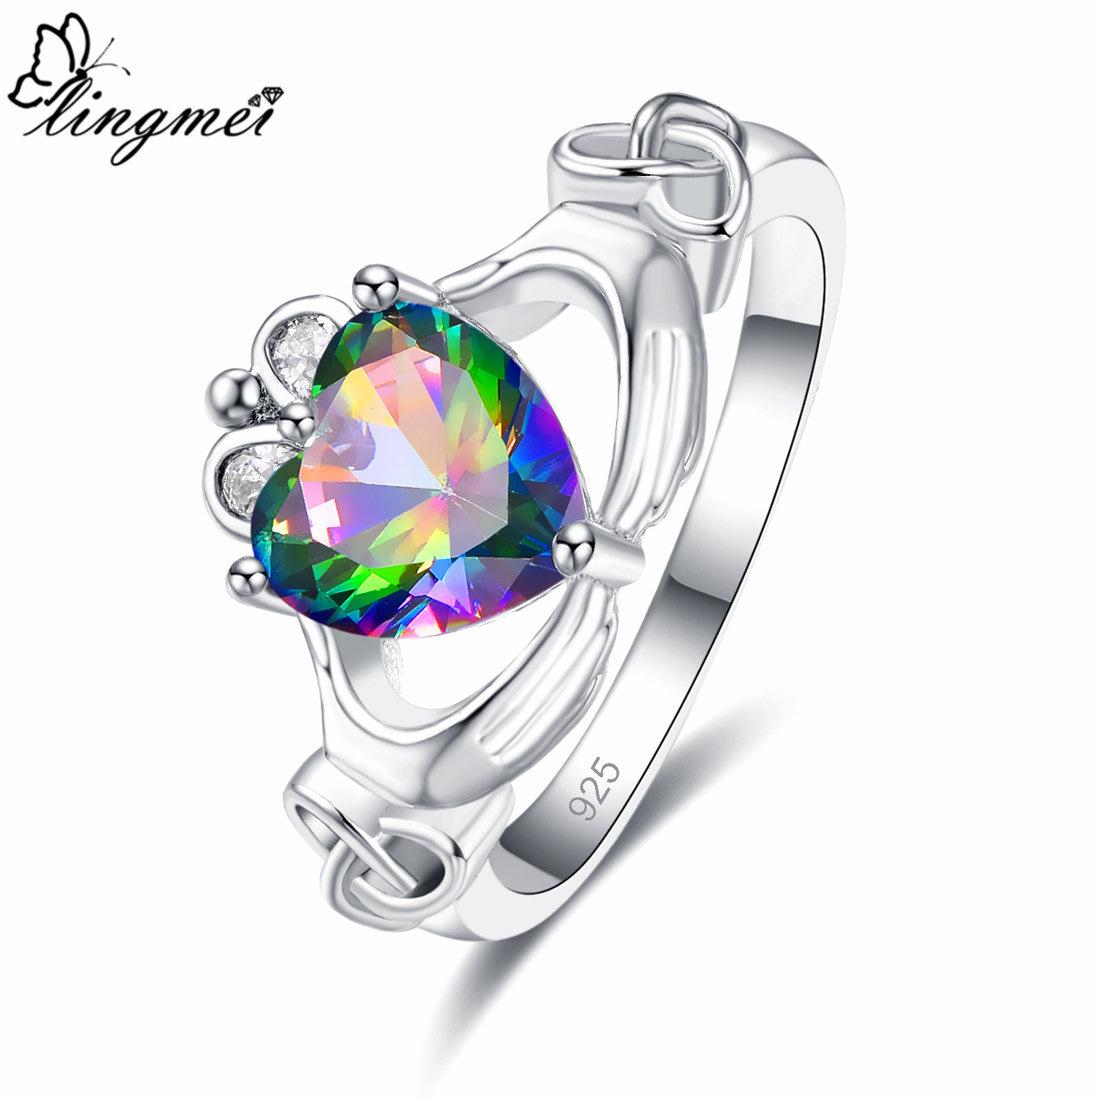 Lingmei Claddagh Style Wedding Bride Heart Promise Ring for Women Multicolor & Pink Zircon Silver Jewelry Fashion Size 6-9